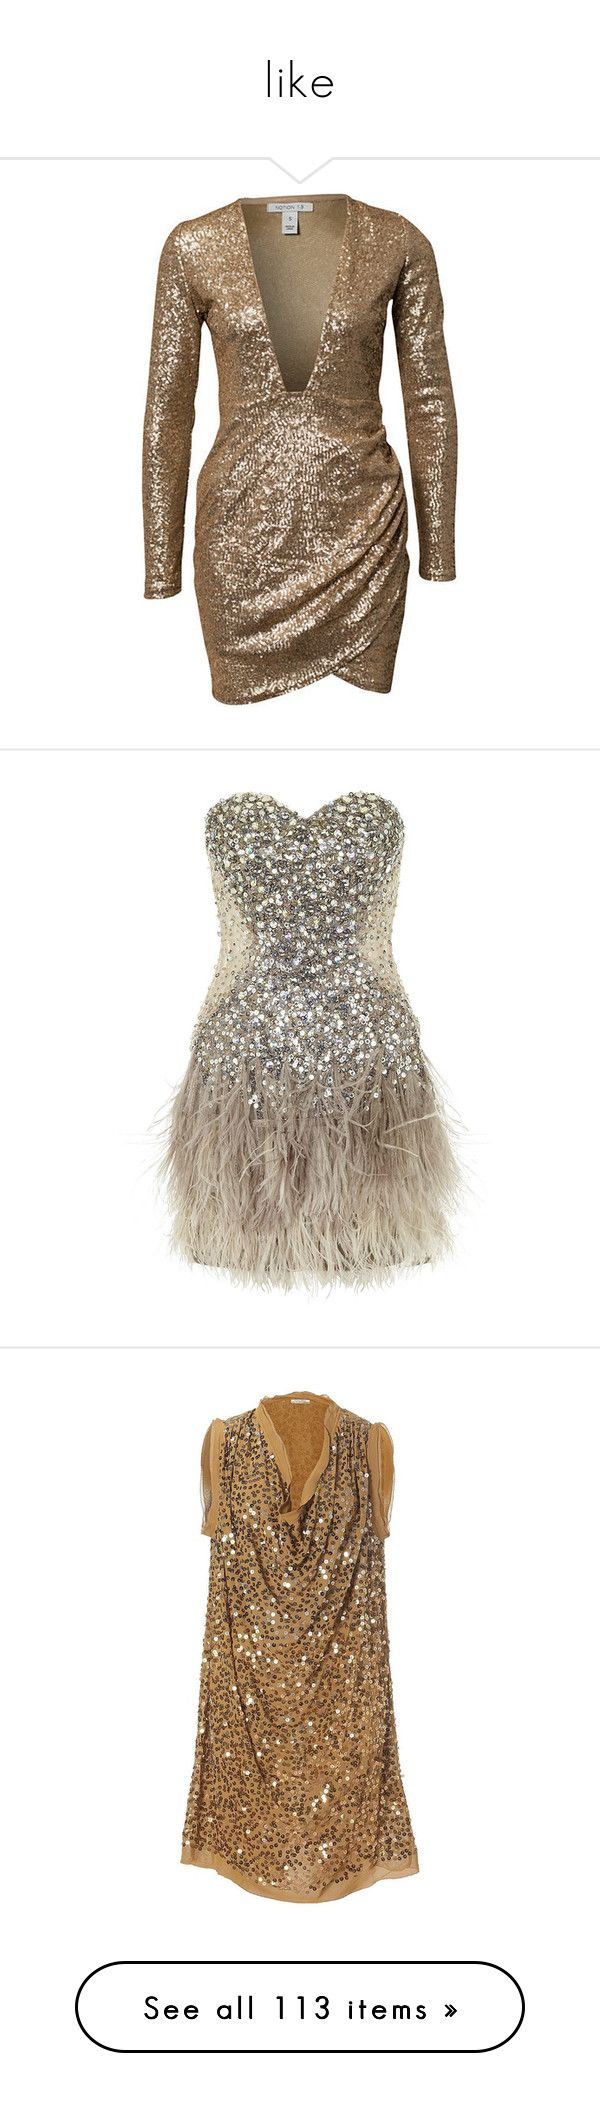 """""""like"""" by brittklein ❤ liked on Polyvore featuring dresses, brown dress, sequin dresses, gold sequin cocktail dresses, sequin embellished dress, brown sequin dress, vestidos, short dresses, robe and mesh cut-out dresses"""